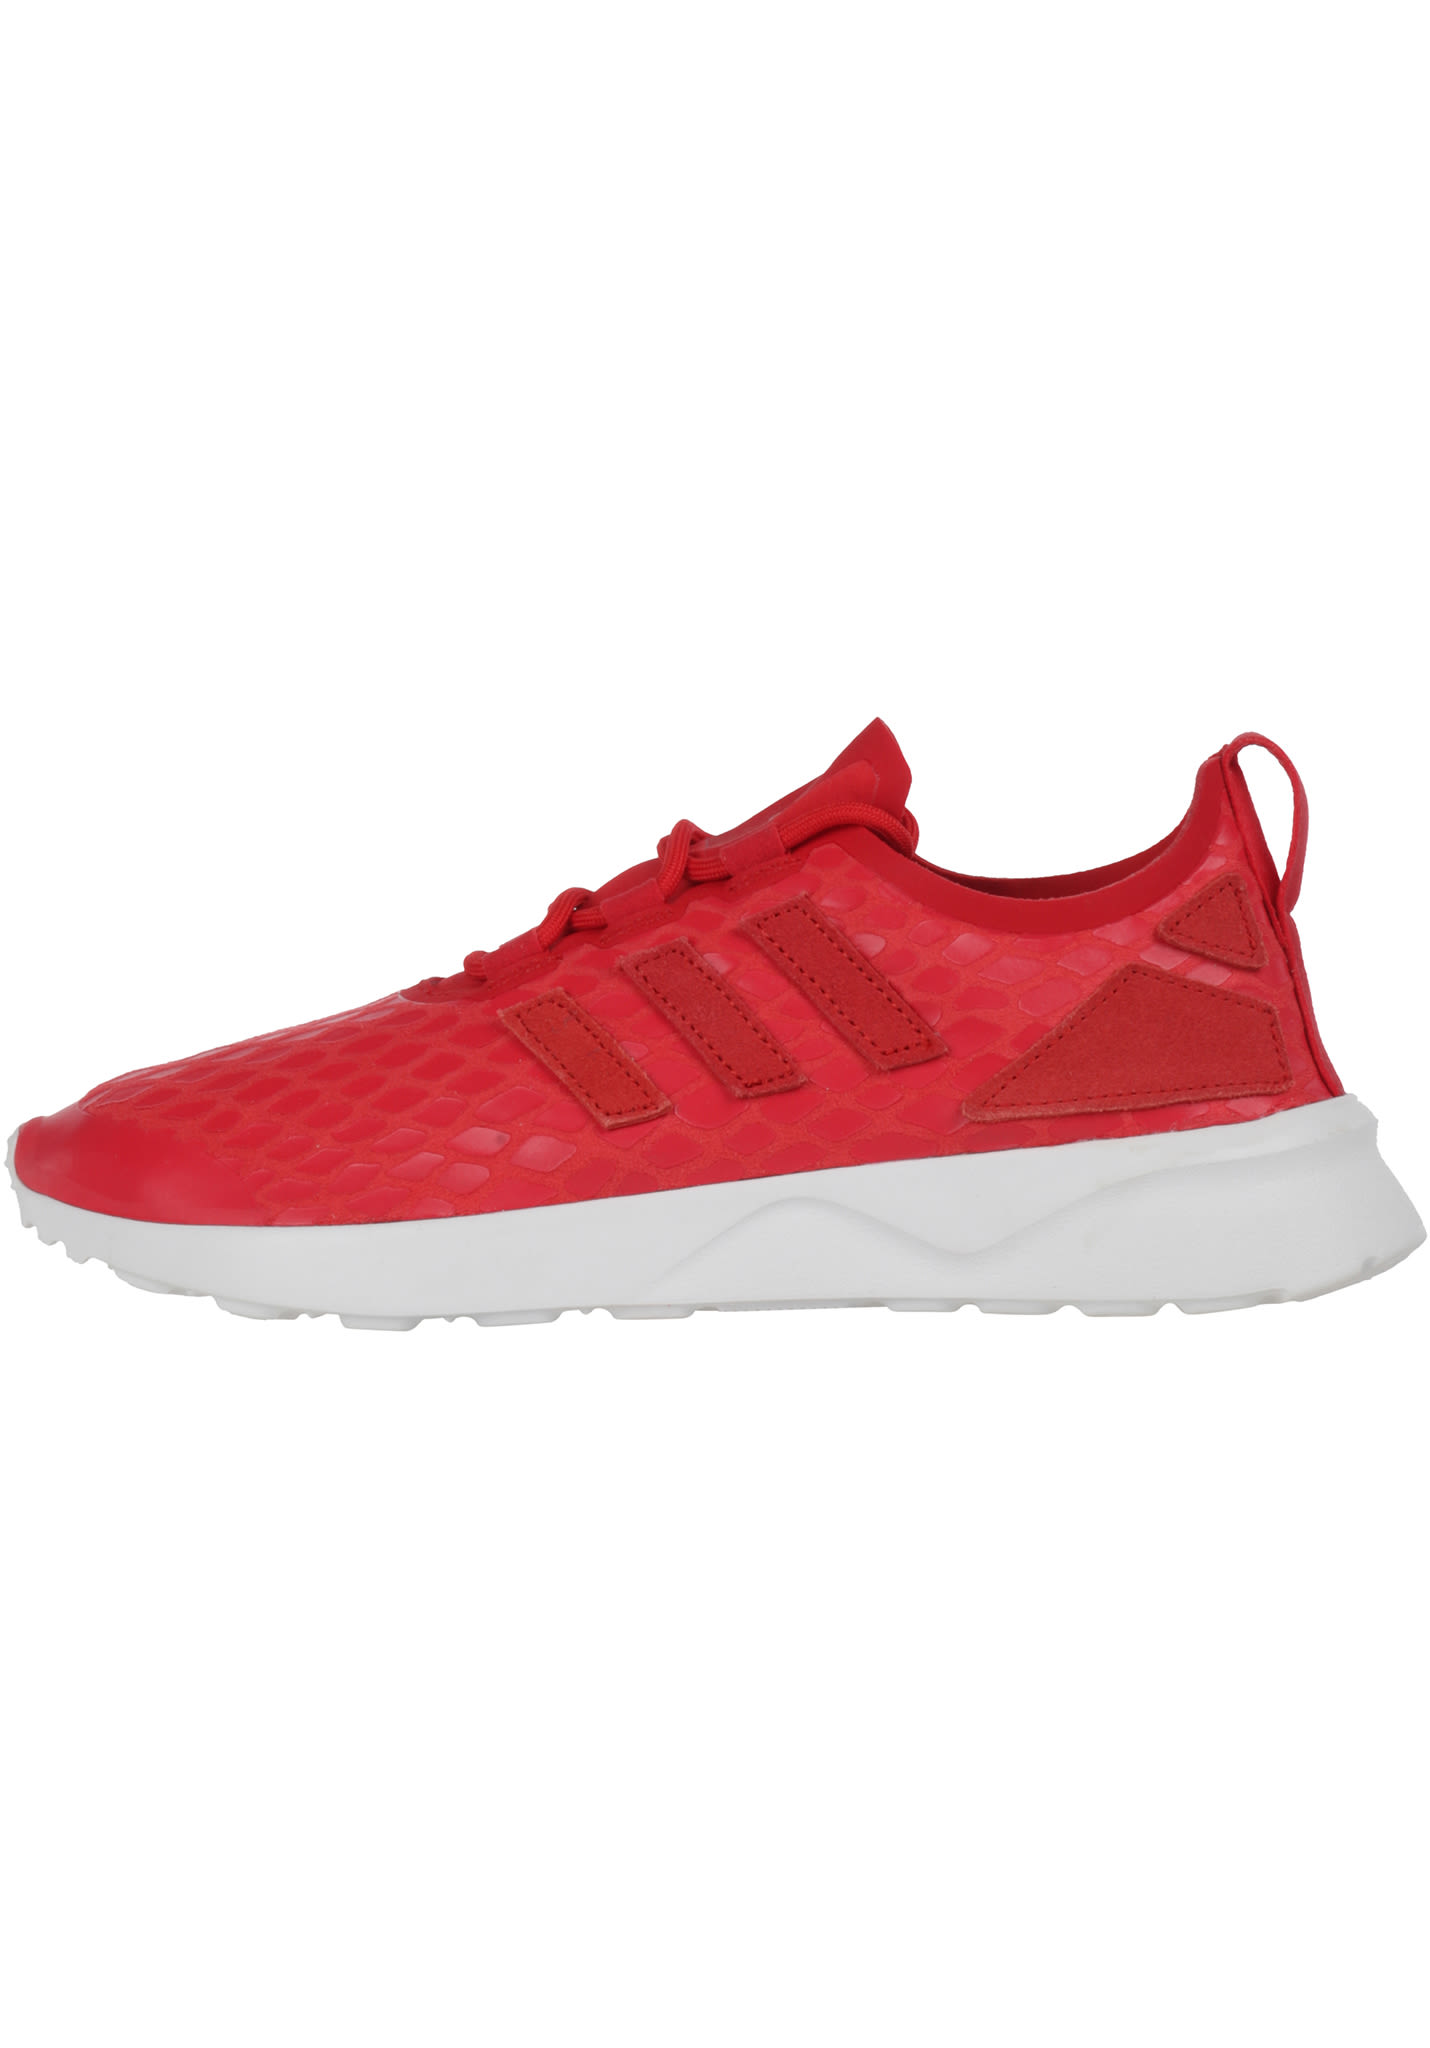 c76340a89 ADIDAS ORIGINALS ZX Flux ADV Verve - Sneakers for Women - Red - Planet  Sports